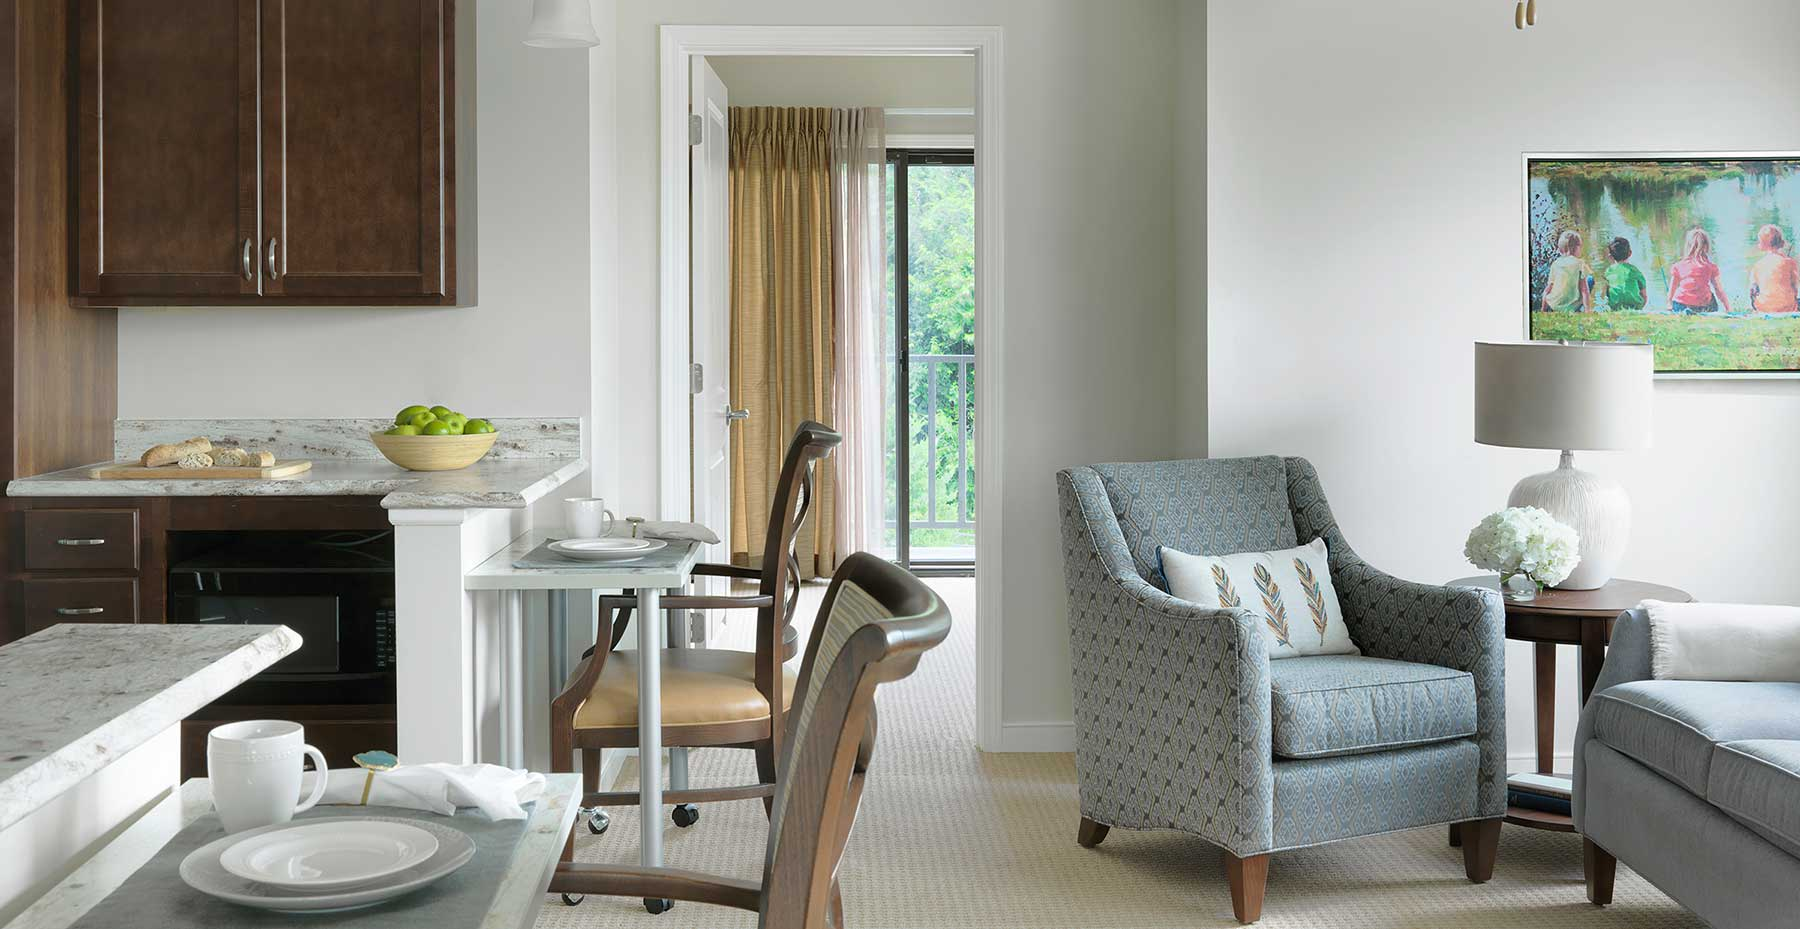 An apartment living room at Kingswood Senior Living Located in Kansas City, MO.